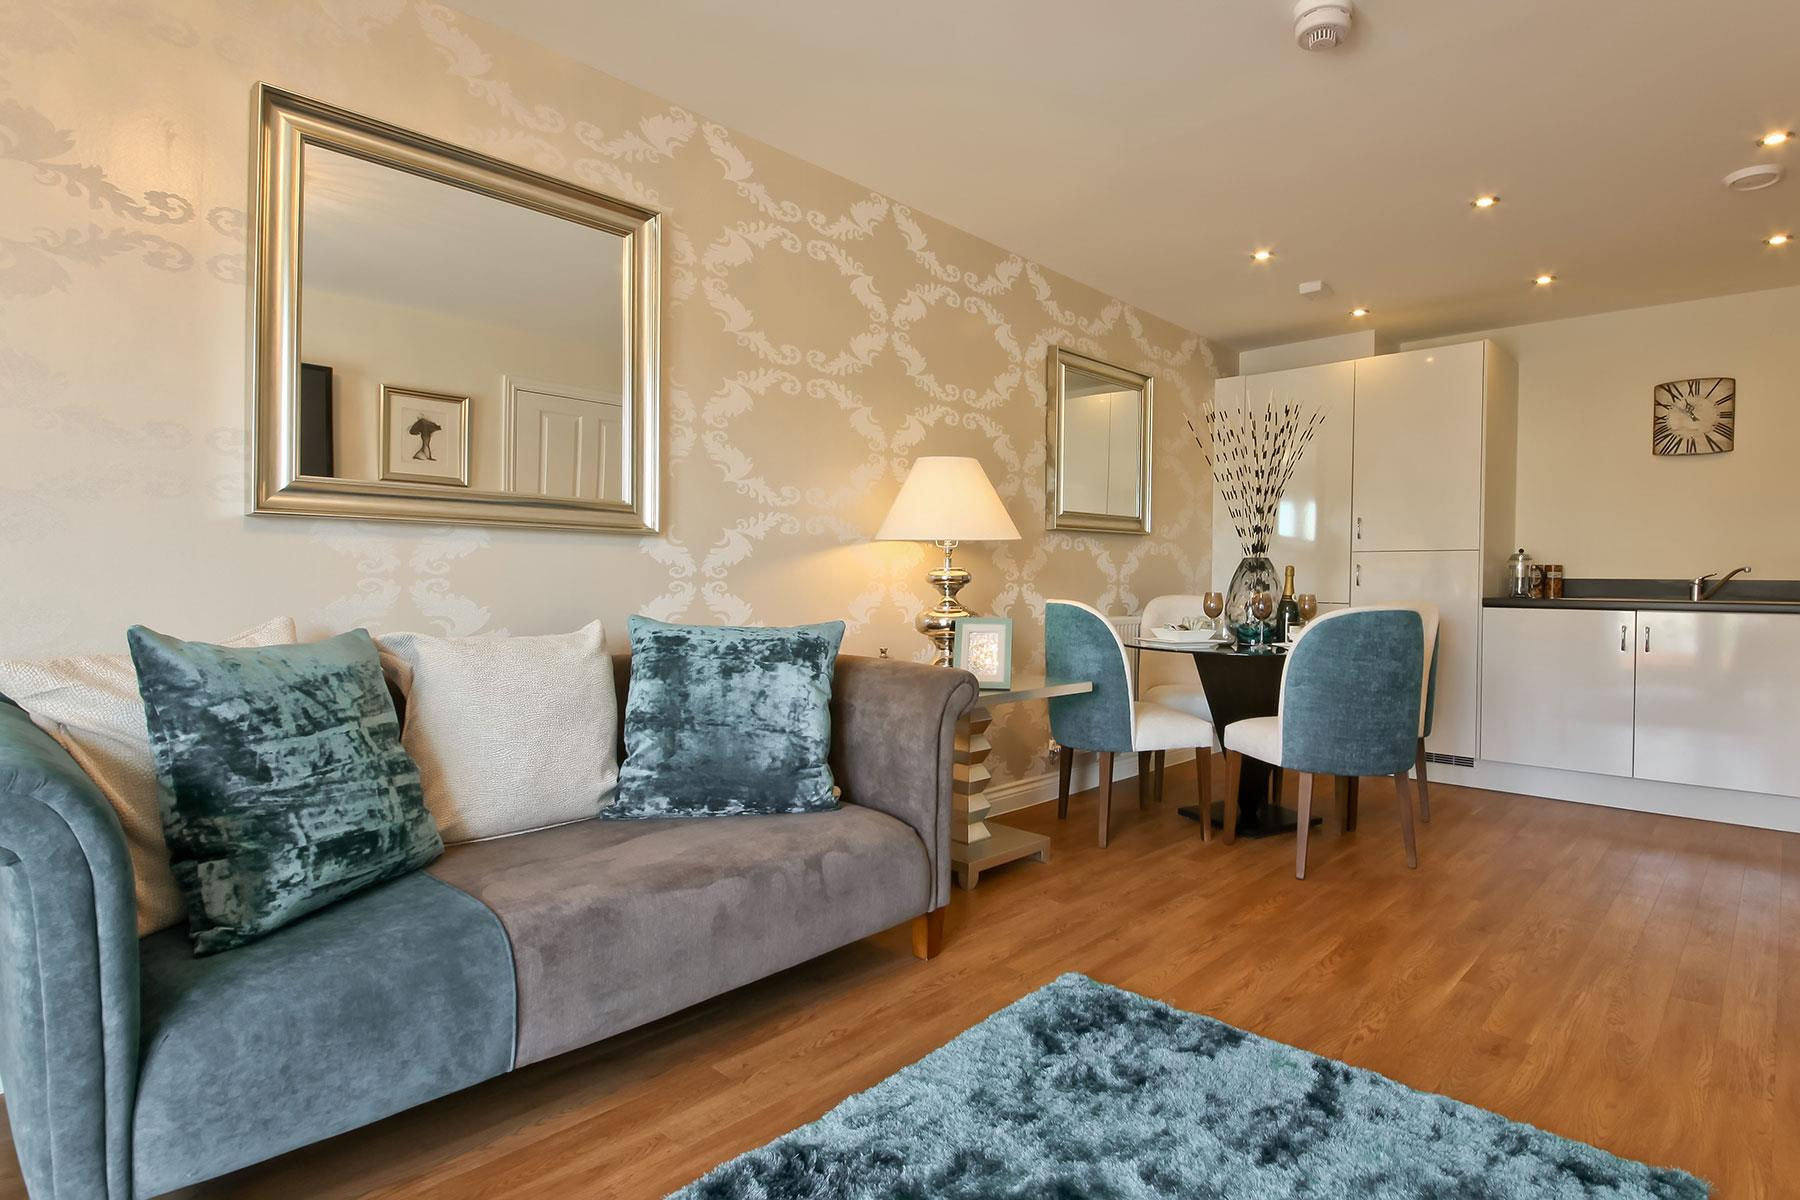 Taylor Wimpey - Typical living room